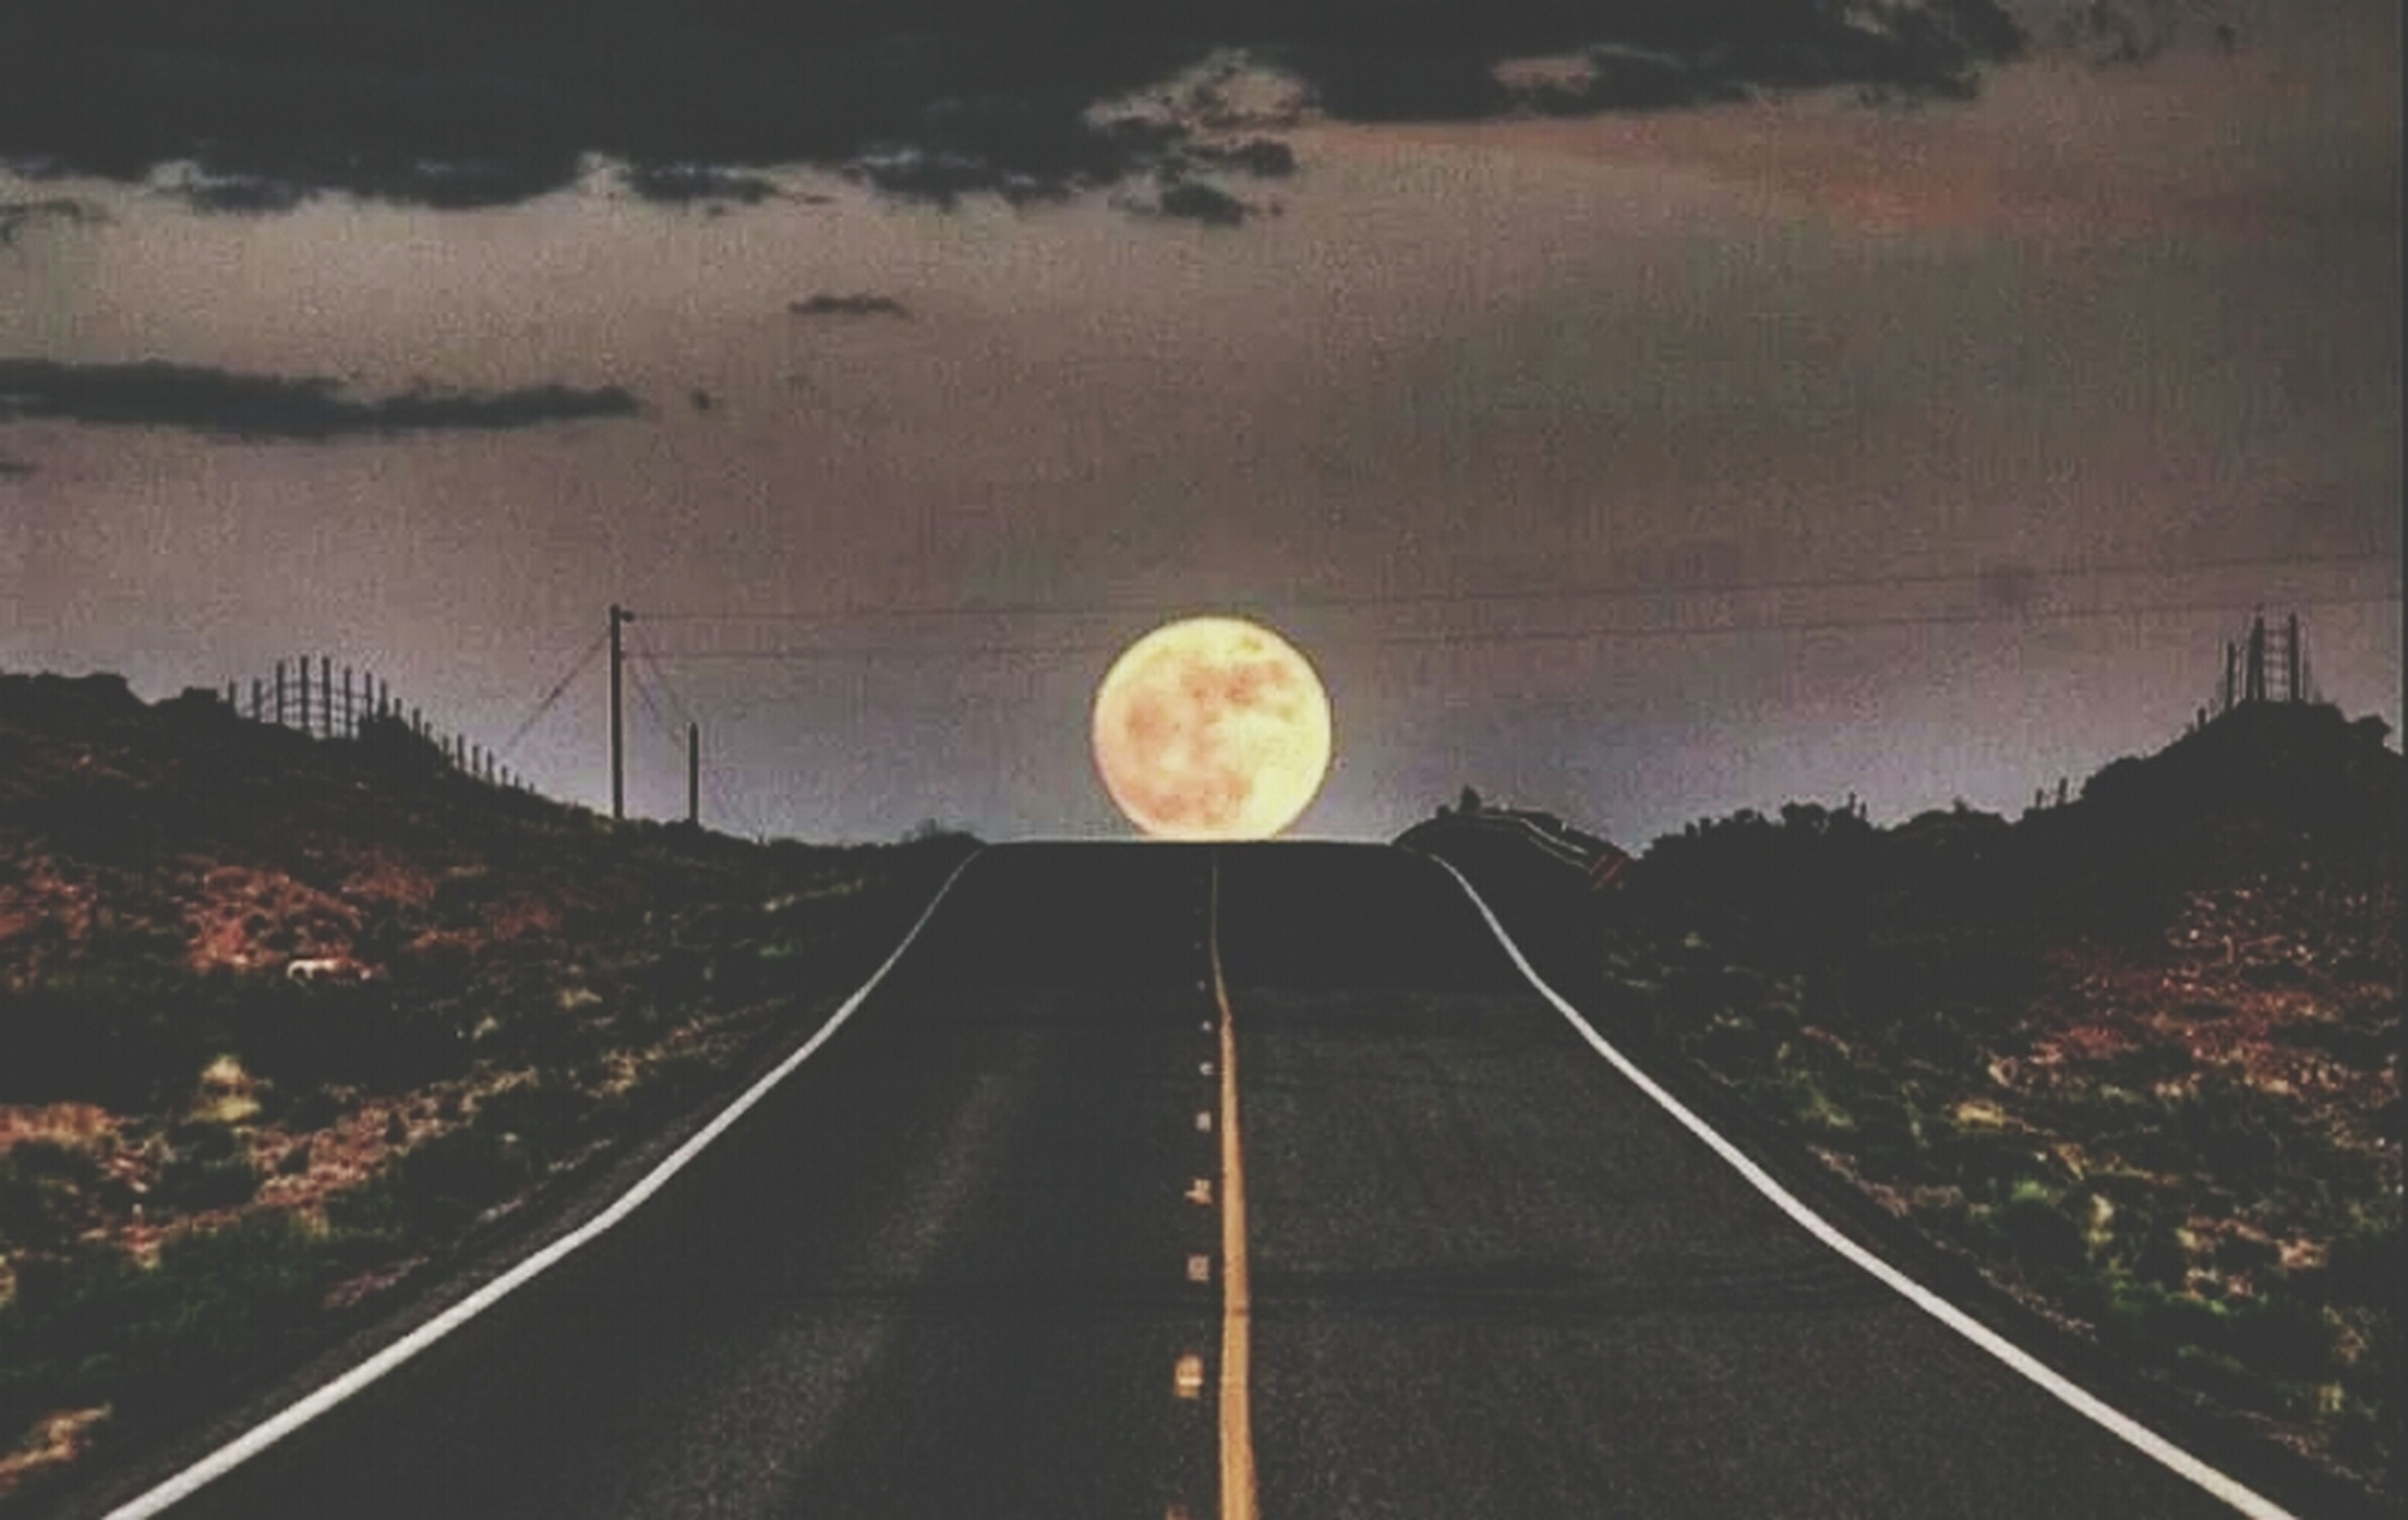 transportation, the way forward, sky, road, vanishing point, diminishing perspective, outdoors, landscape, railroad track, nature, no people, road marking, cloud - sky, dusk, street, night, high angle view, illuminated, circle, connection